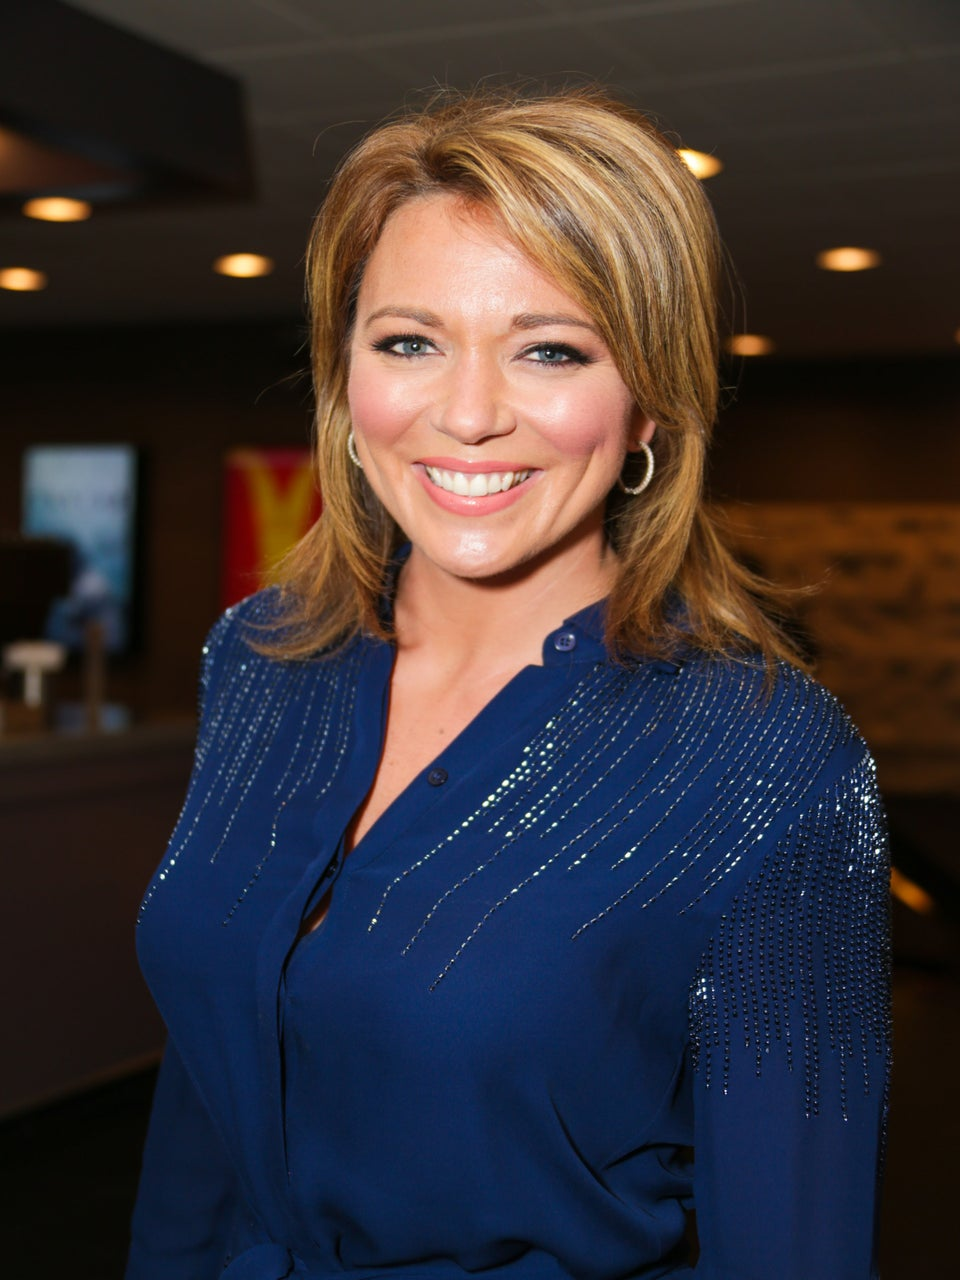 CNN's Brooke Baldwin Shuts Down Guest For Saying the N-Word on Her Show: 'It Is Not Okay'